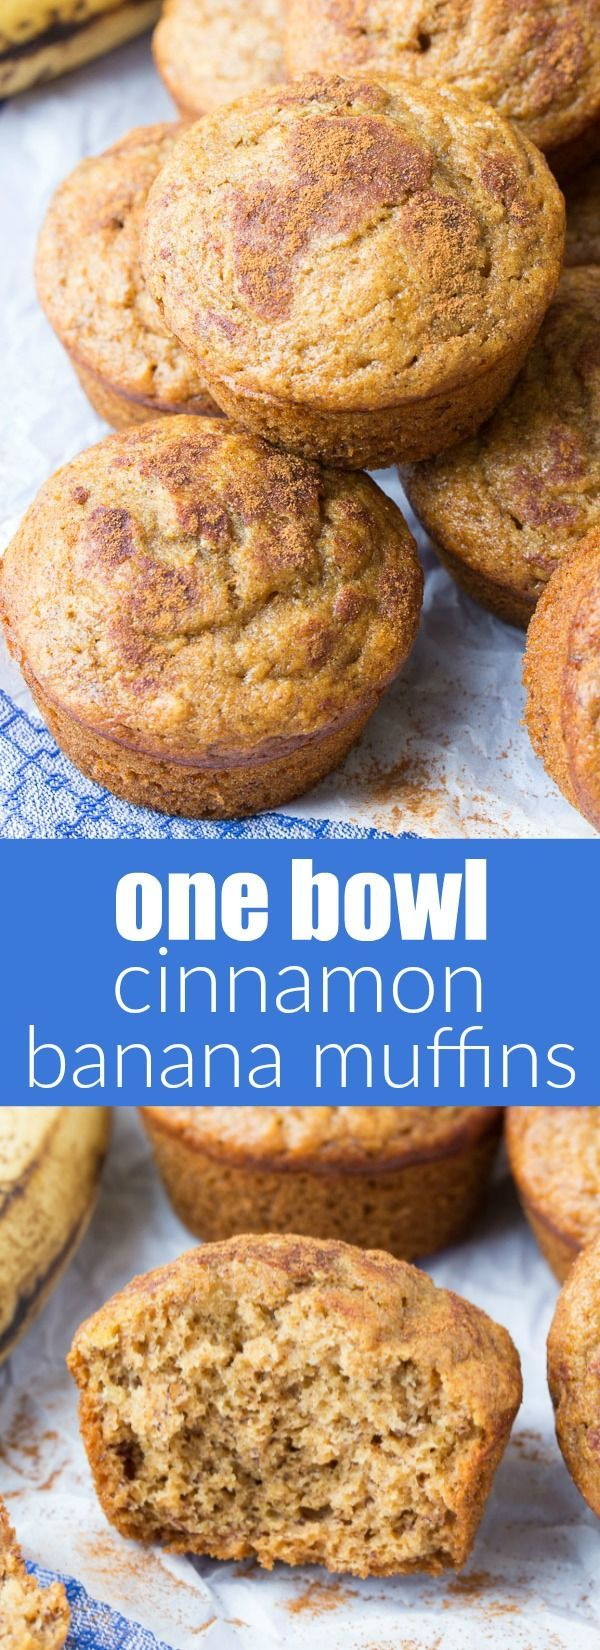 One Bowl Cinnamon Banana Bread Muffins! Fast and easy to make, freezer-friendly, perfect for food prep! Plus, they're whole wheat, refined sugar free and healthy! | http://www.kristineskitchenblog.com